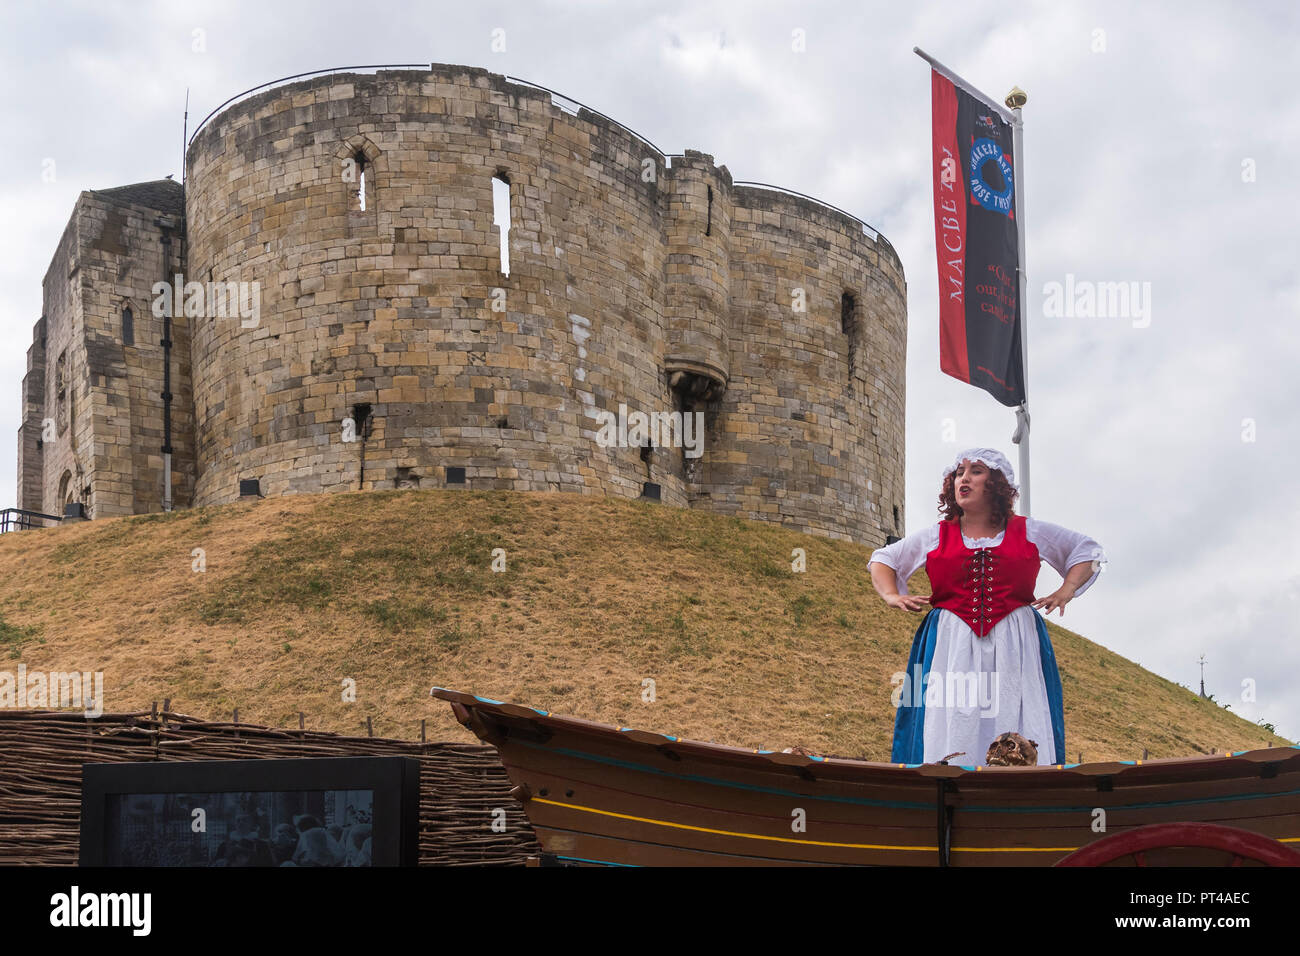 Female actress in costume (playing Mad Alice) giving live talk & performance on wagon in front of Cliffords Tower - York, Yorkshire, England, UK. - Stock Image